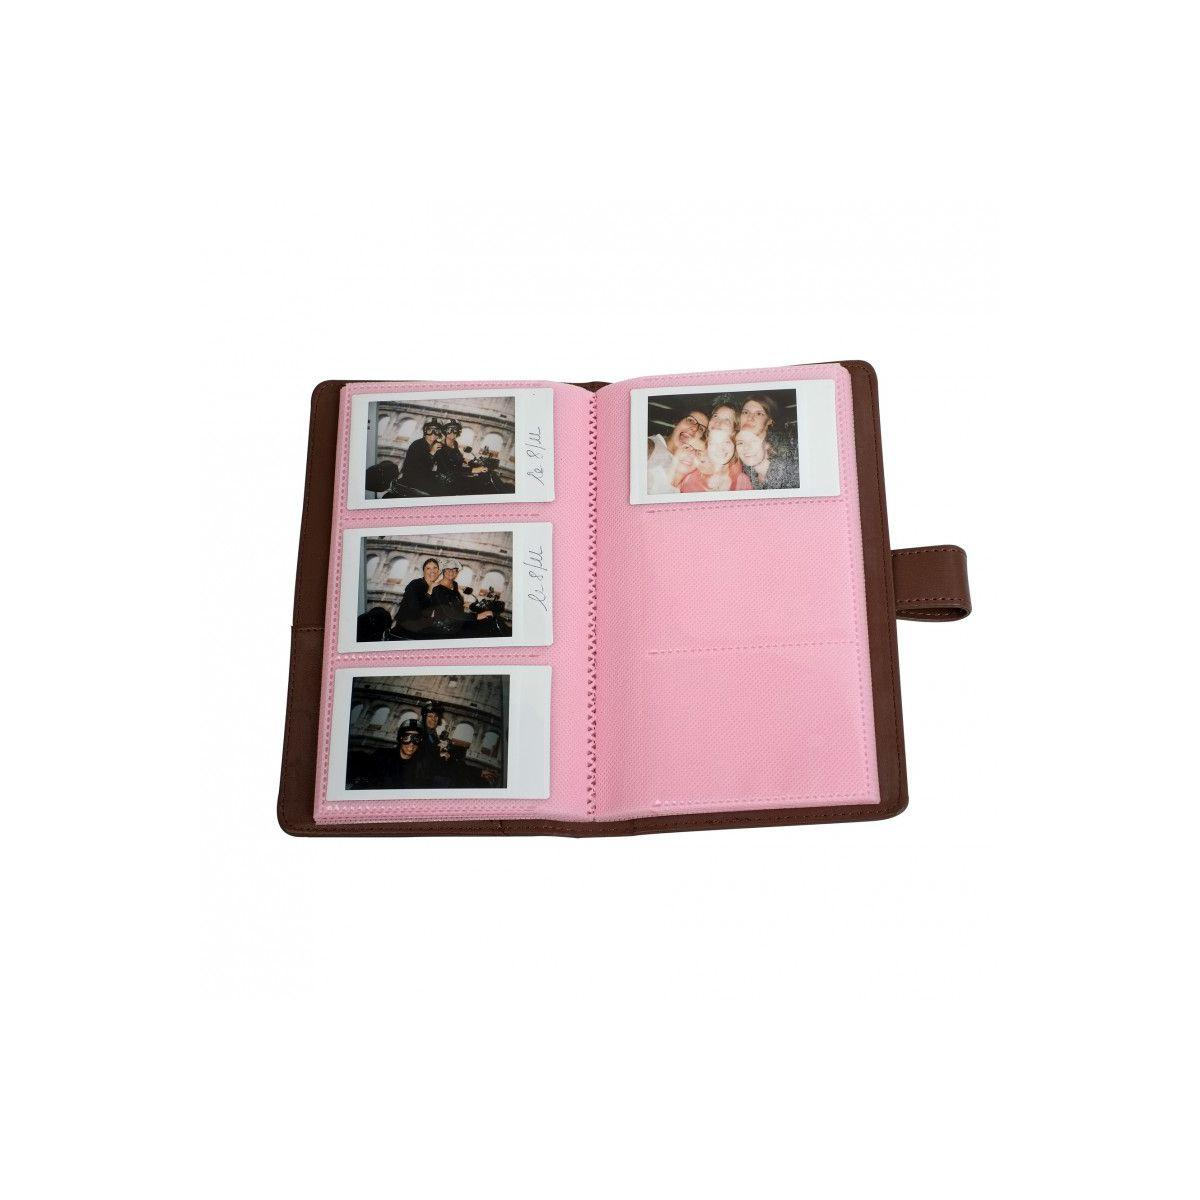 Album photo fuji instax mini brun